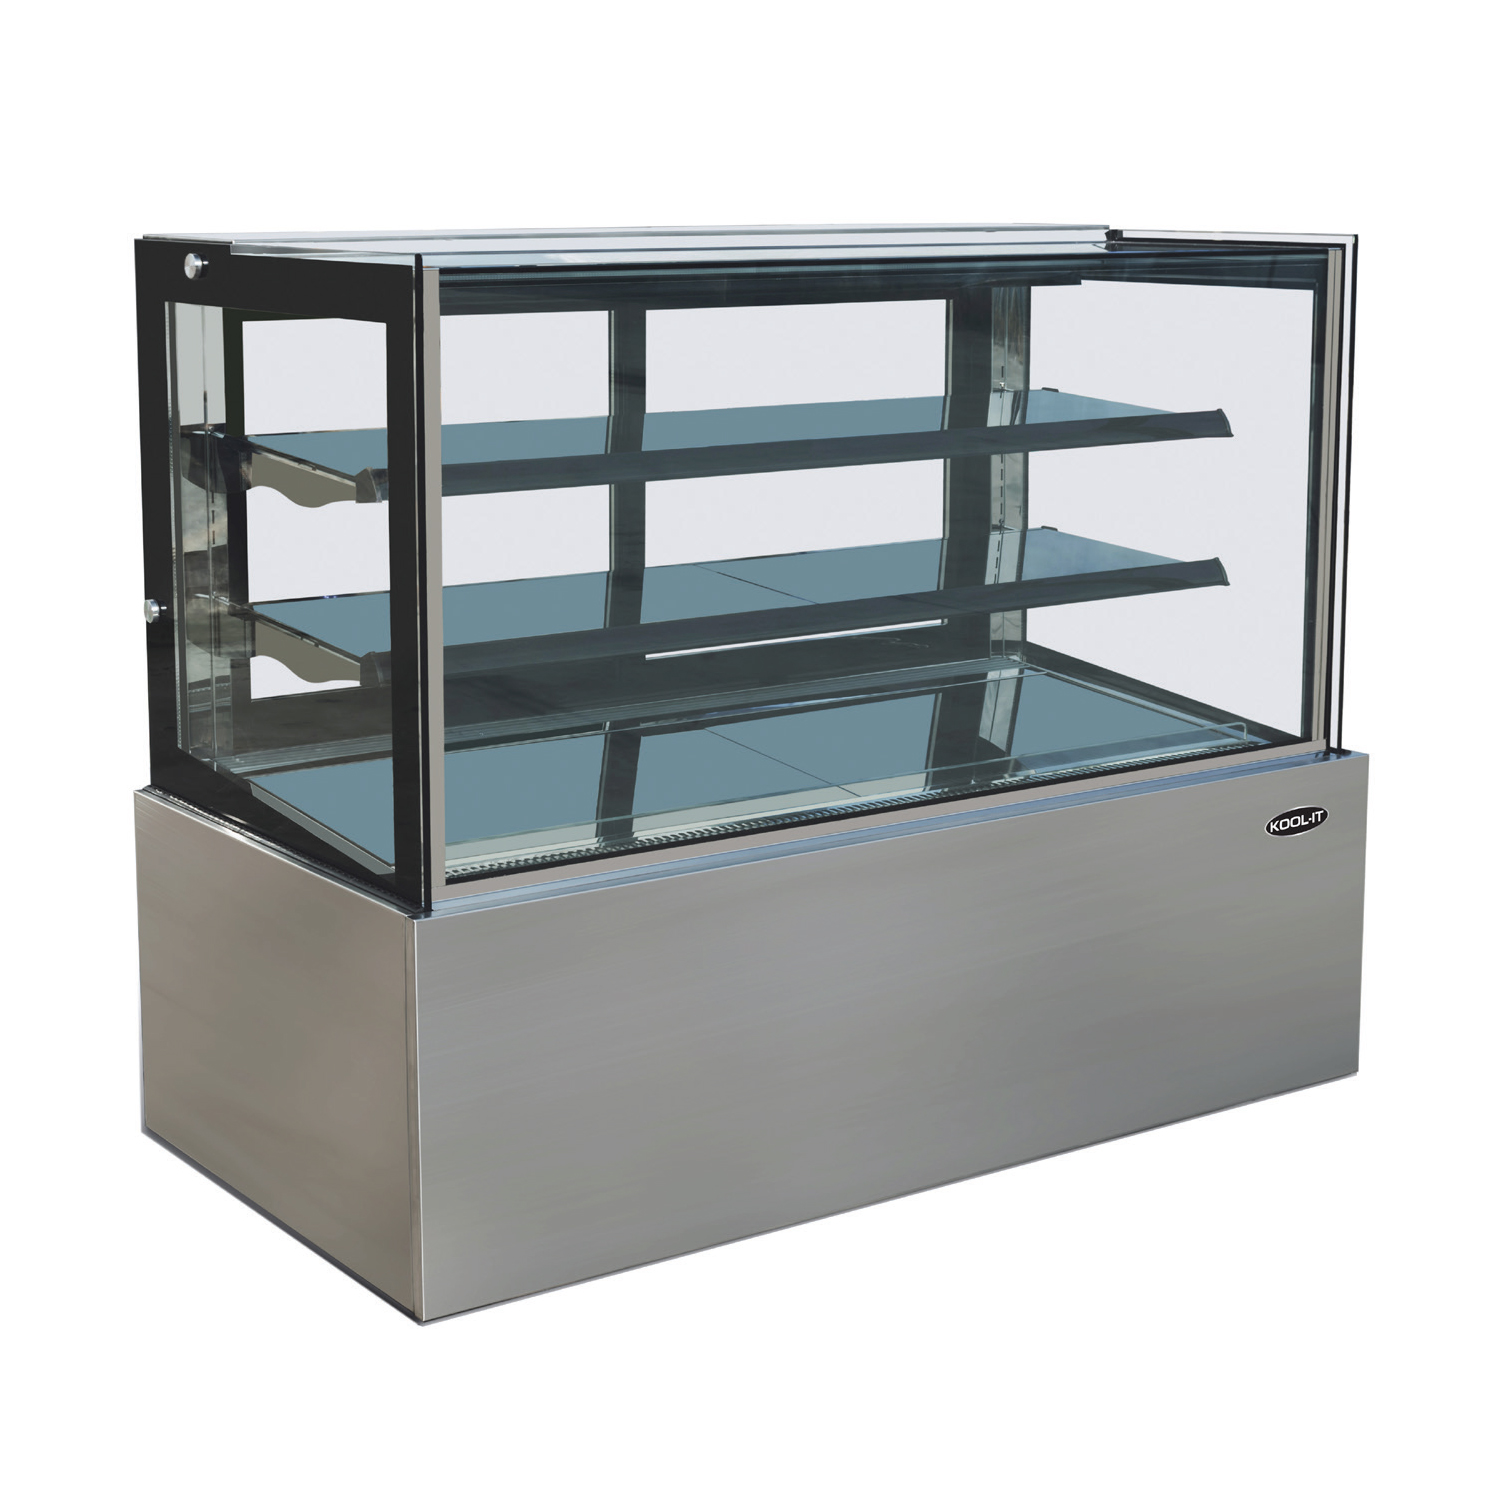 MVP KBF-60D display case, non-refrigerated bakery